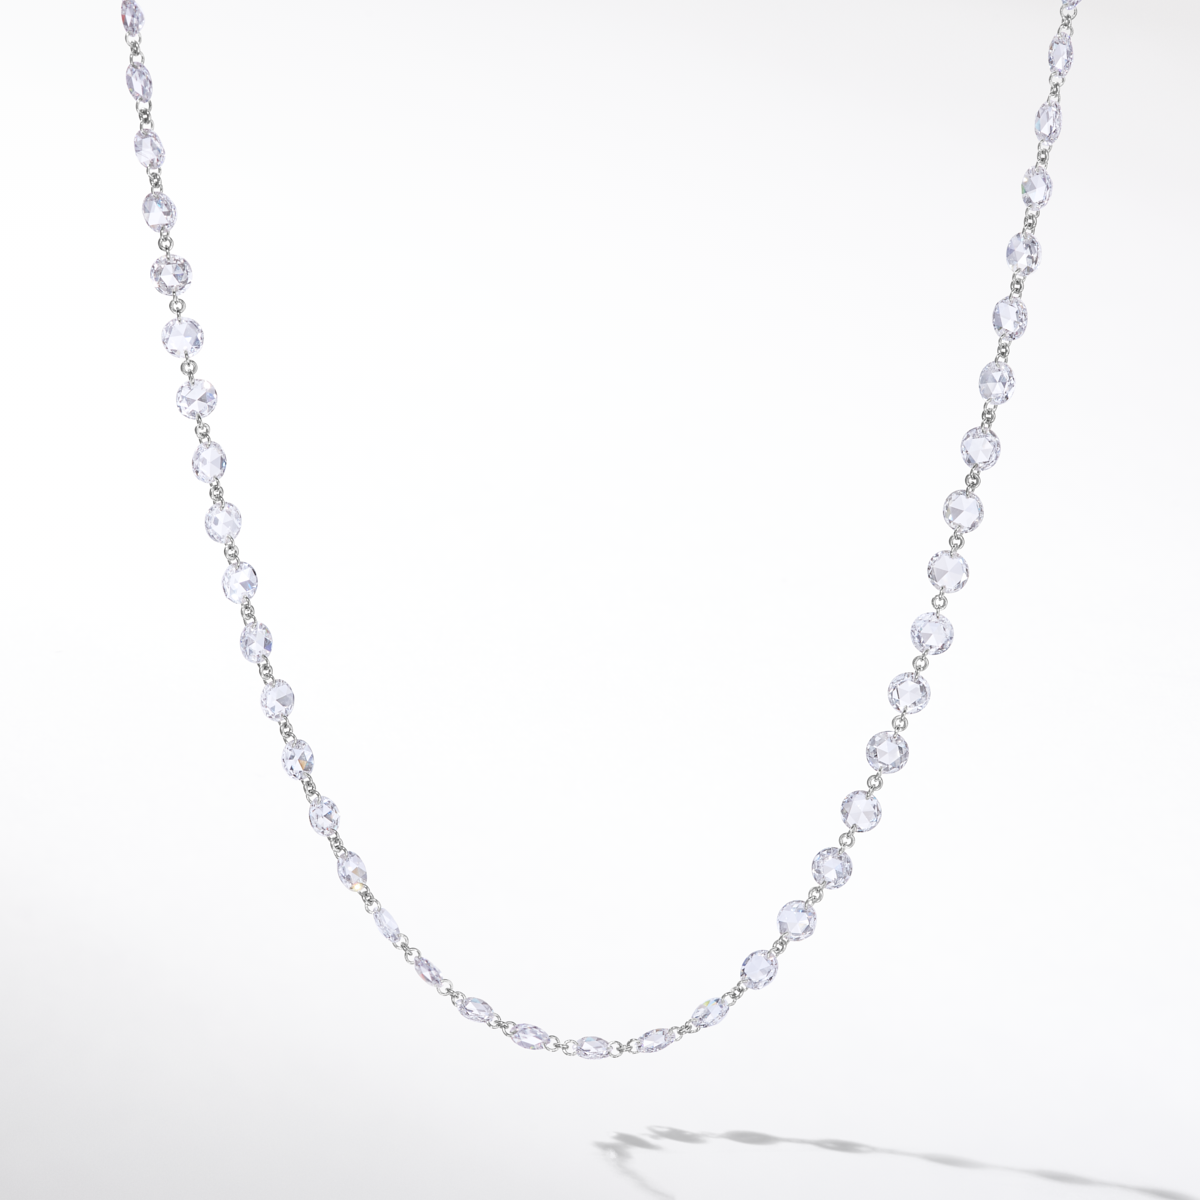 64Facets Ethereal Diamond Chain Necklace in Platinum 950